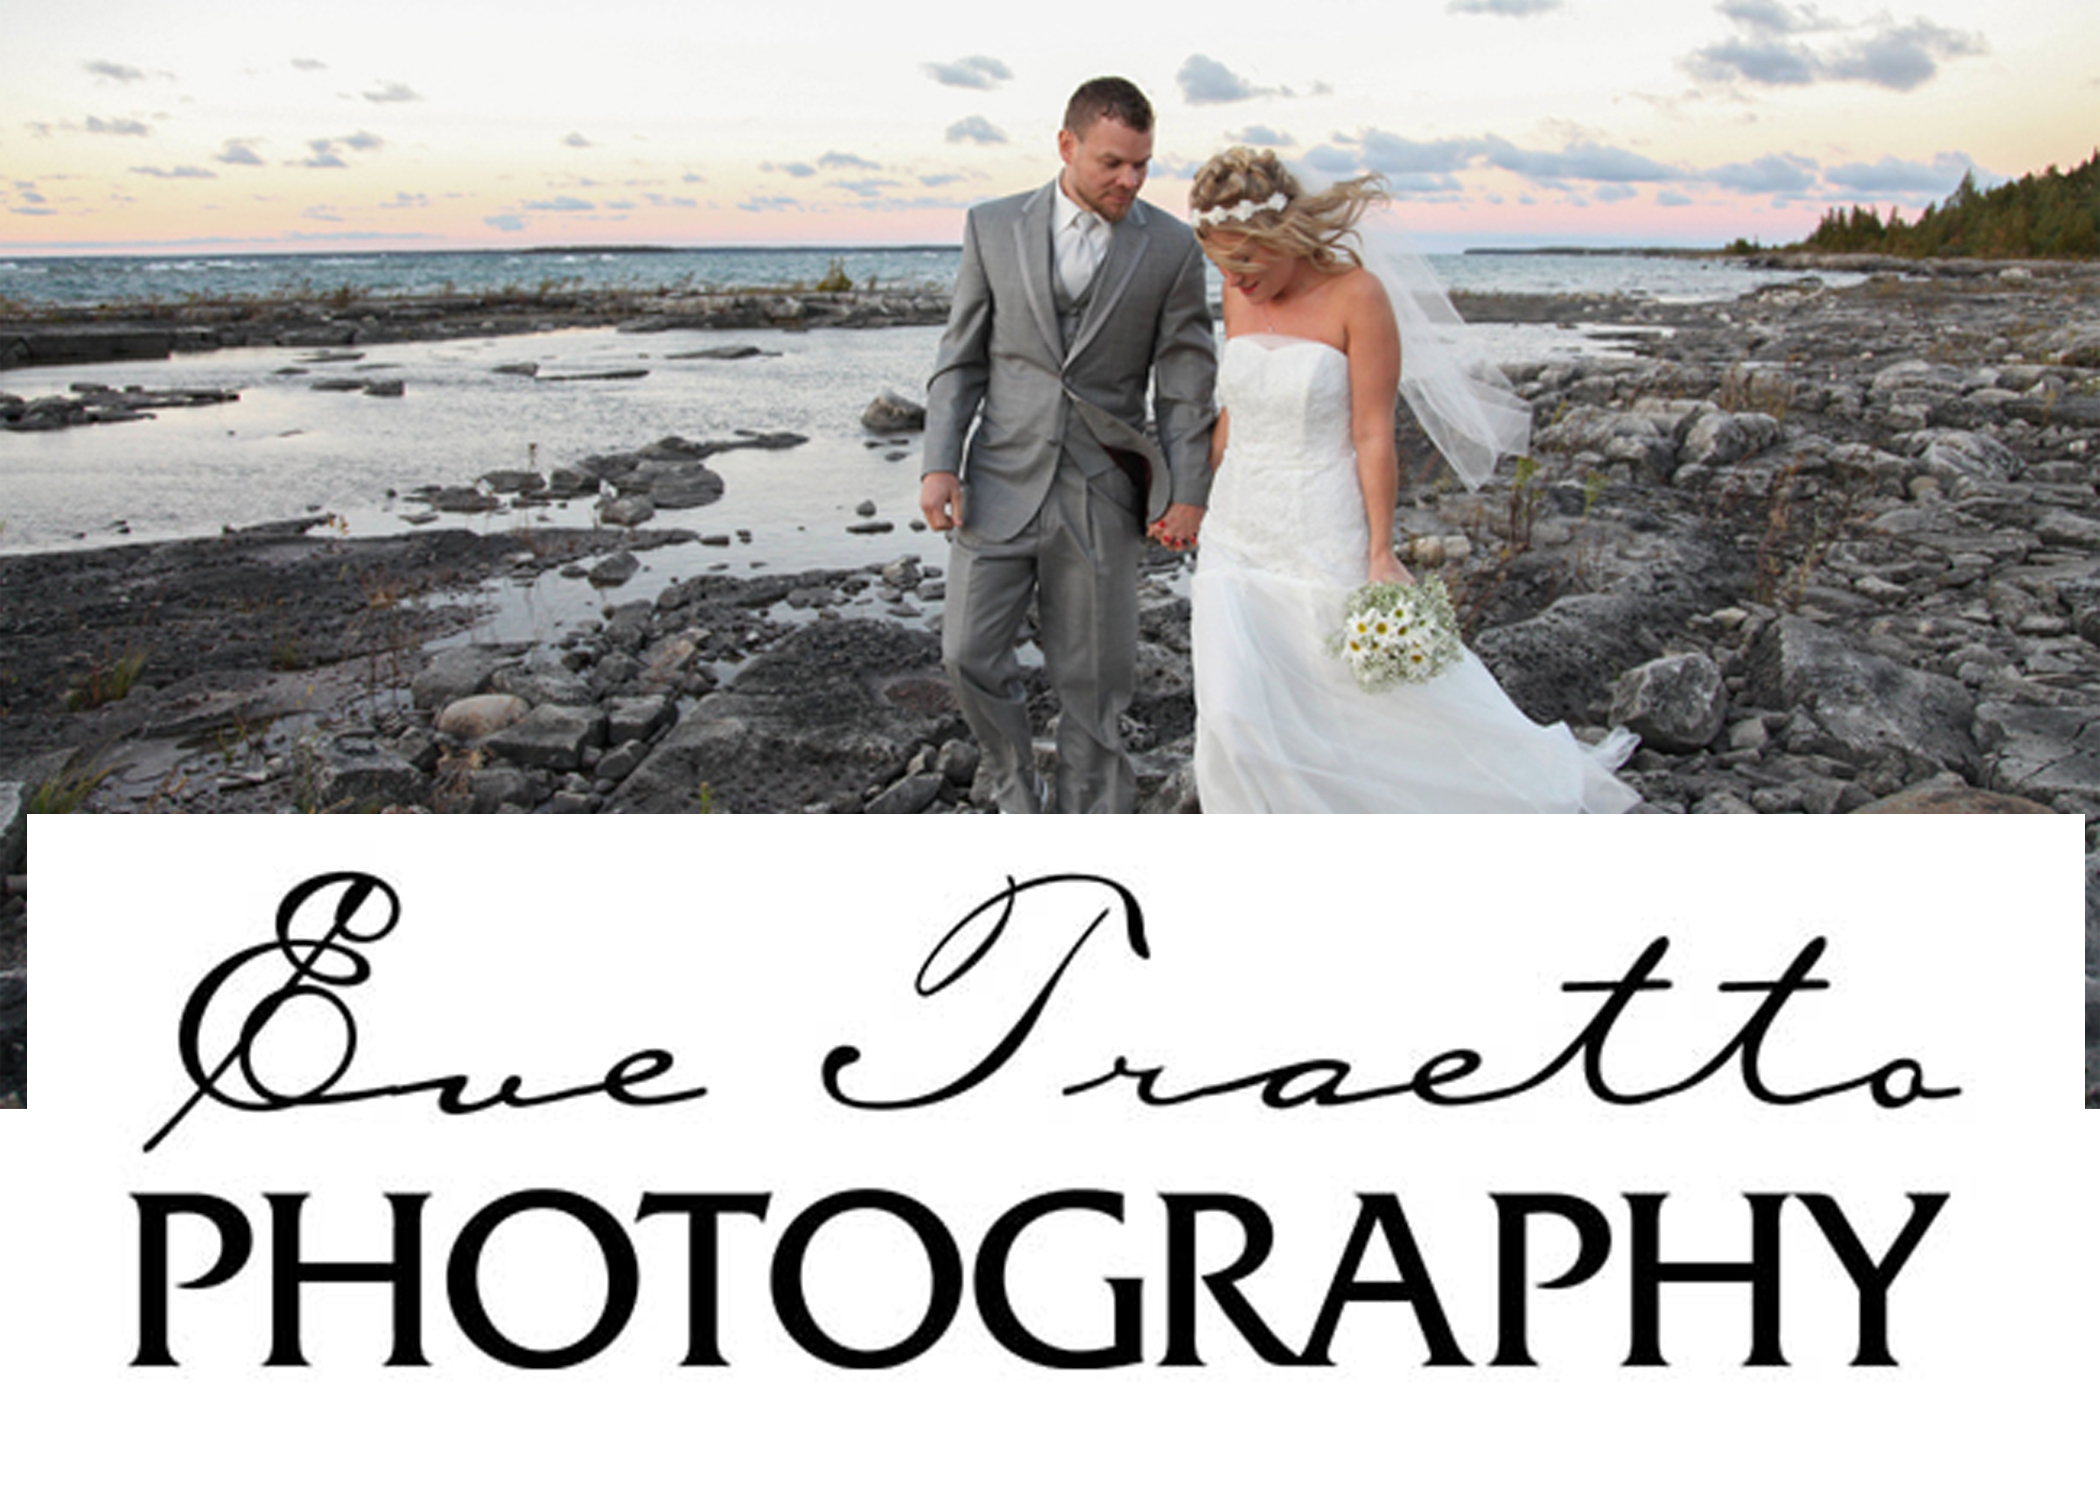 Eve Traetto Photography Blog